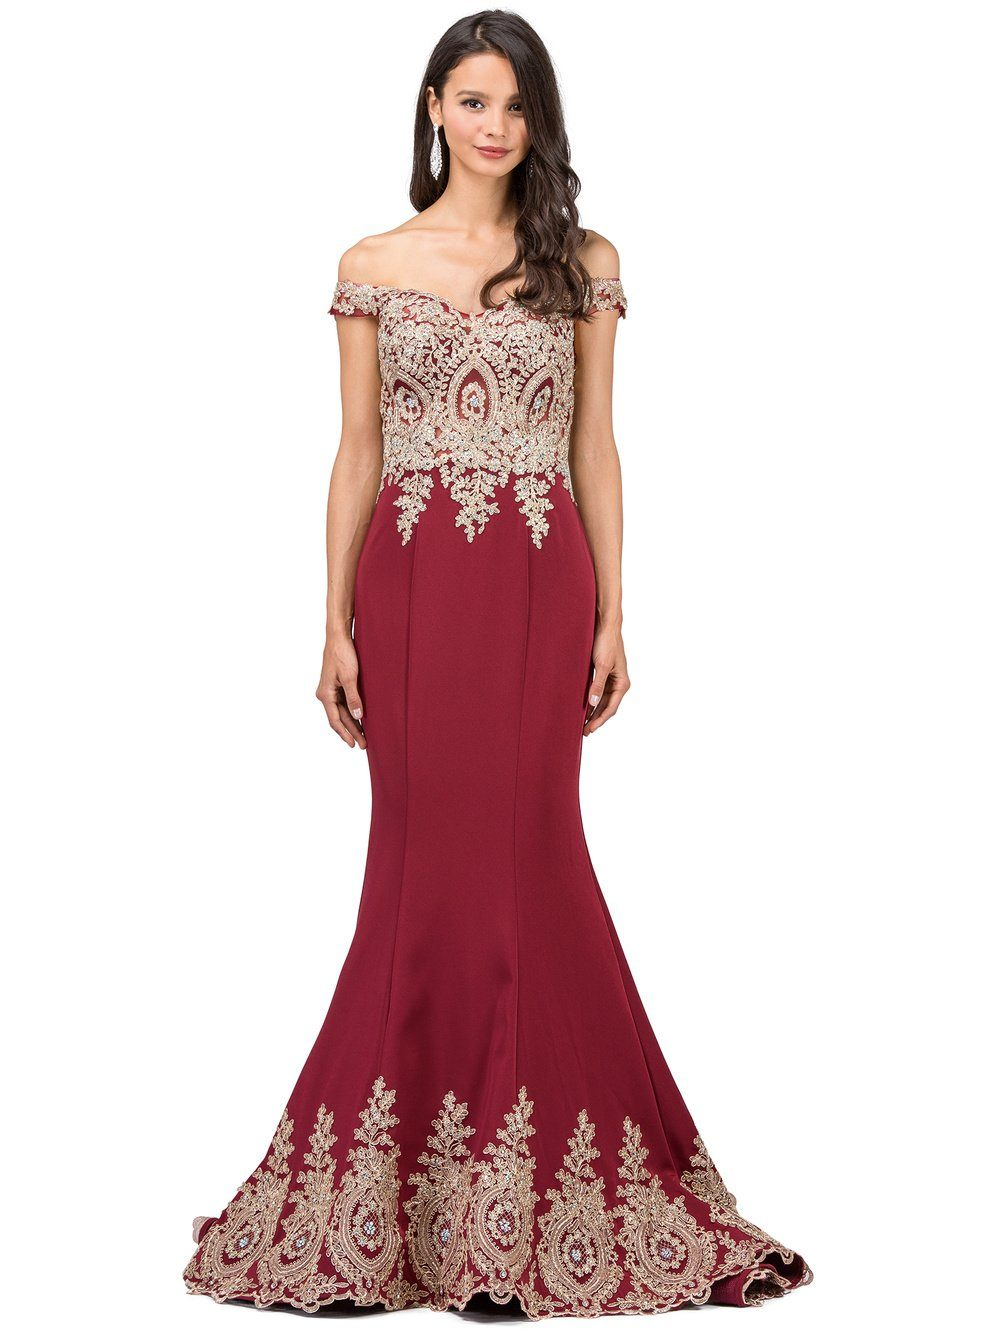 d468b4abcd842 Off the Shoulder Burgundy Prom dress dq9946